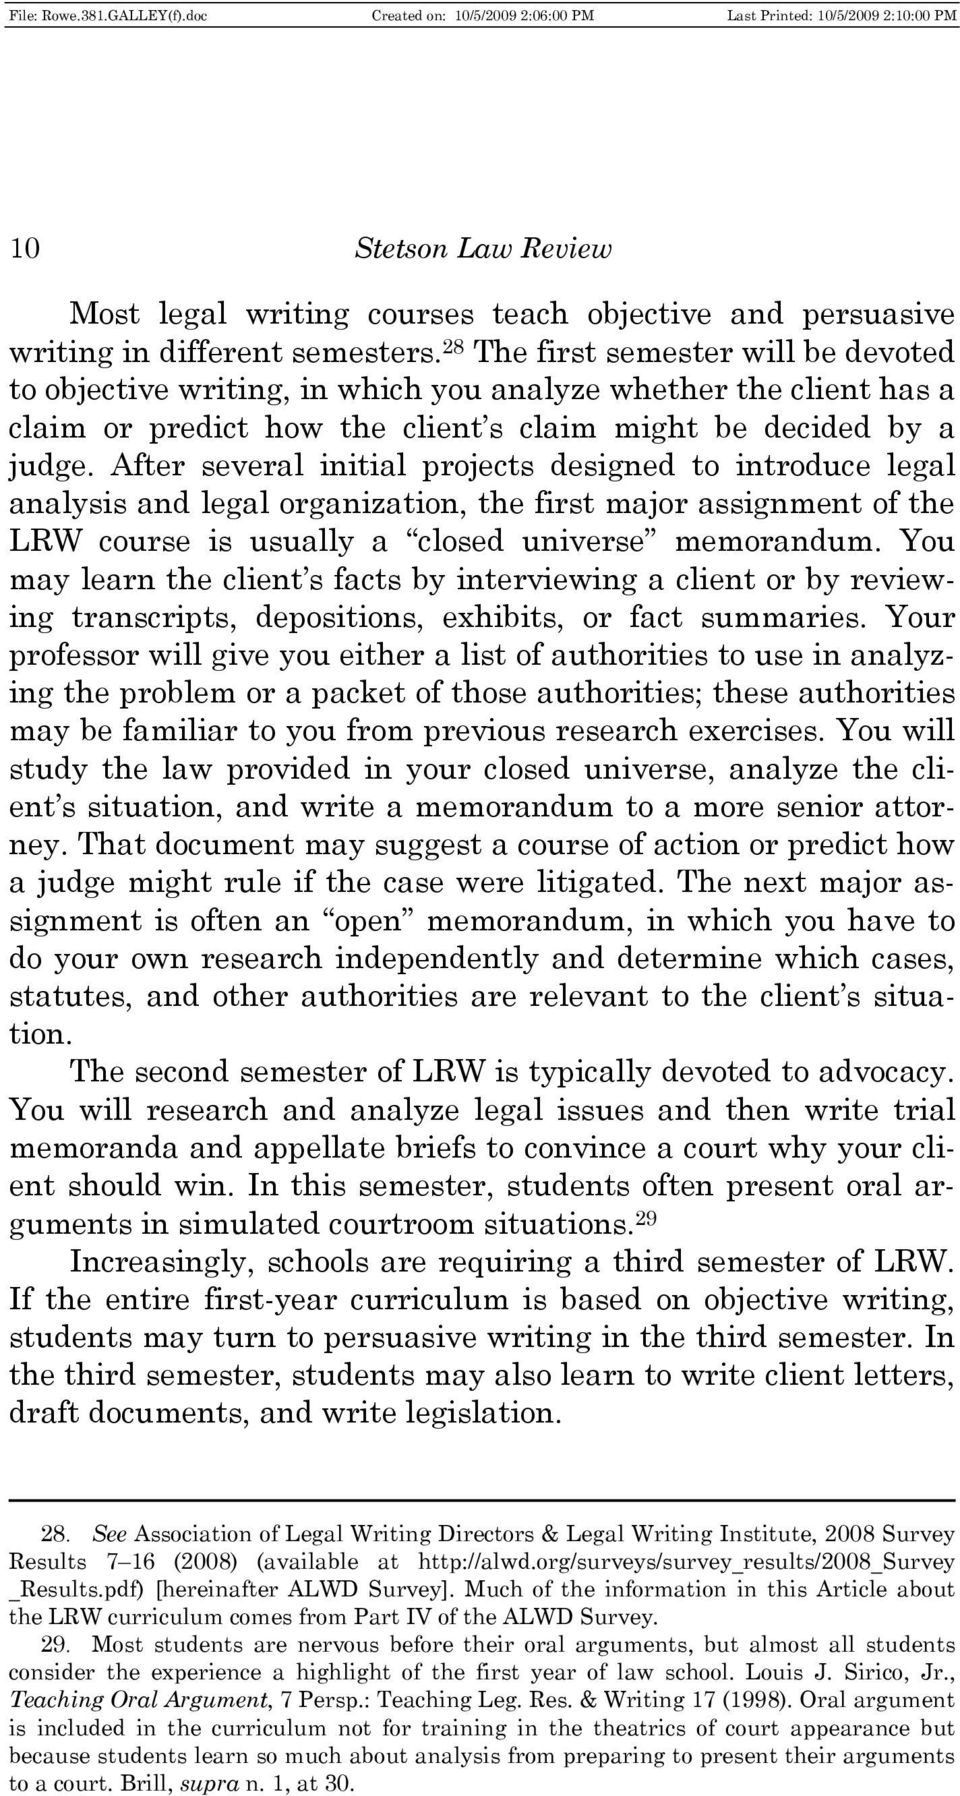 Seven Appellate Tips from a Seventh Circuit Judge